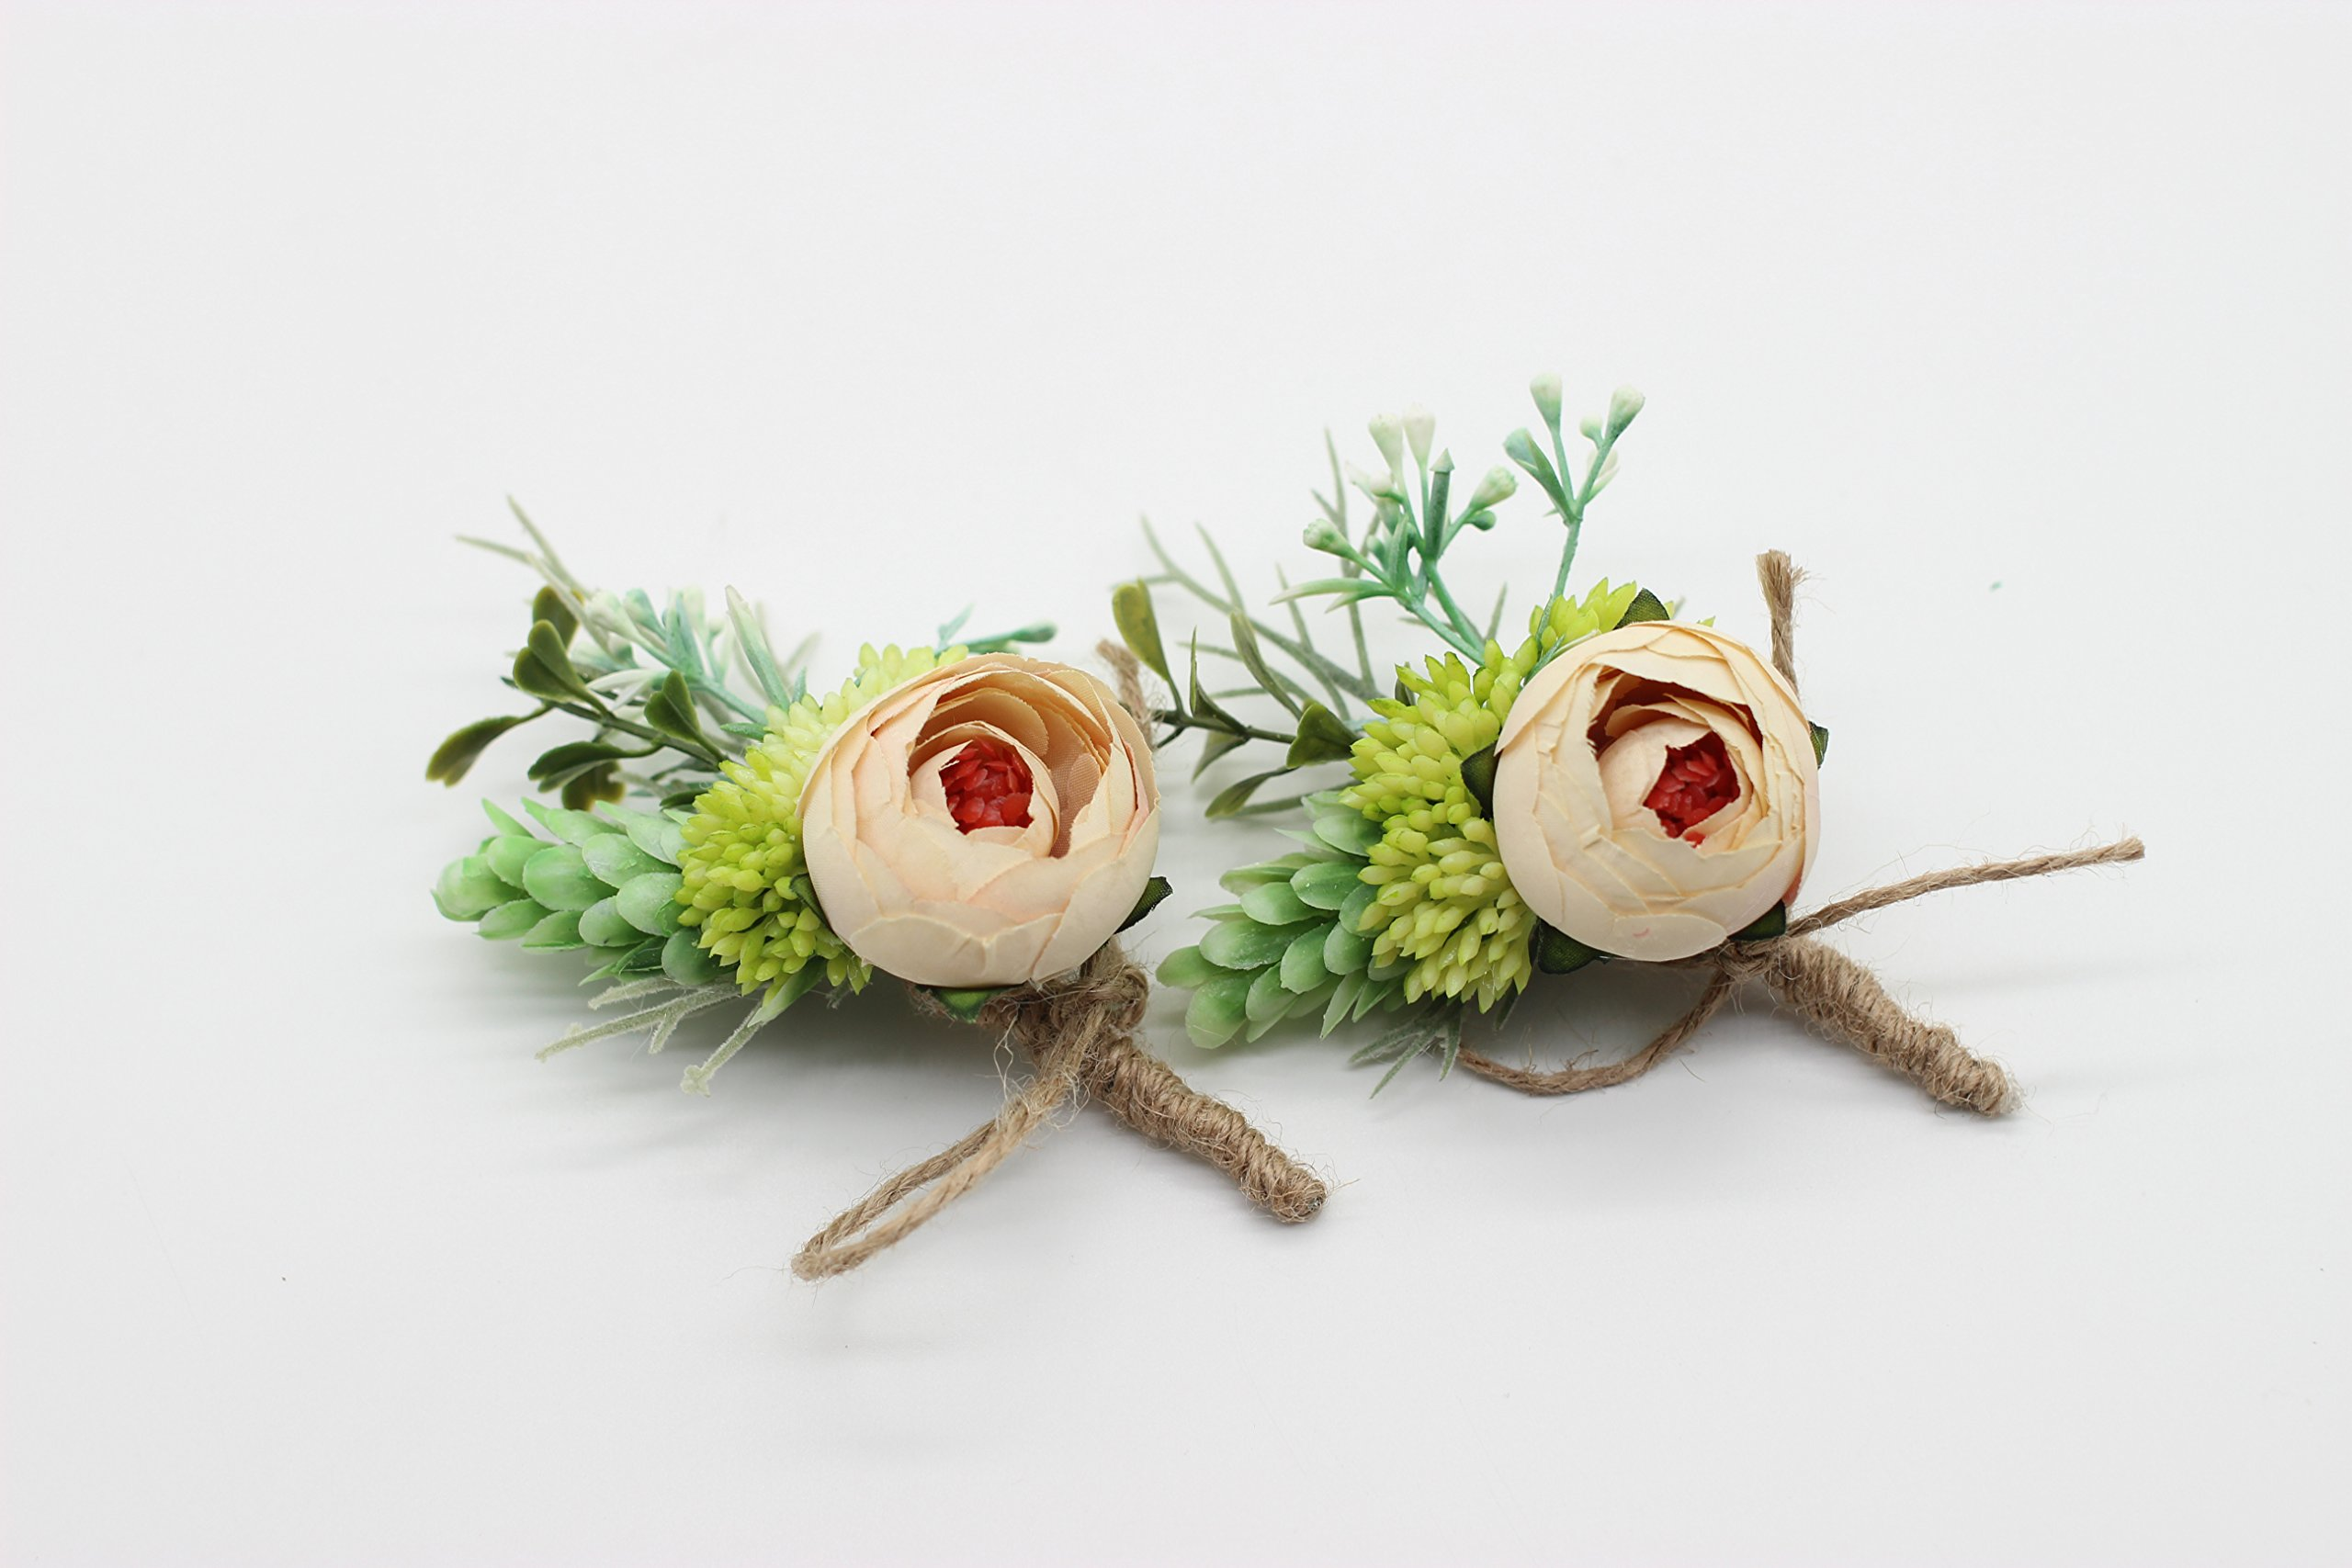 Yokoke-Artificial-Peony-Silk-Flower-Boutonniere-Bouquet-Corsage-Wristlet-Vintage-Fake-Succulent-Plants-Pink-Peach-For-Wedding-Decor-2-Pcs